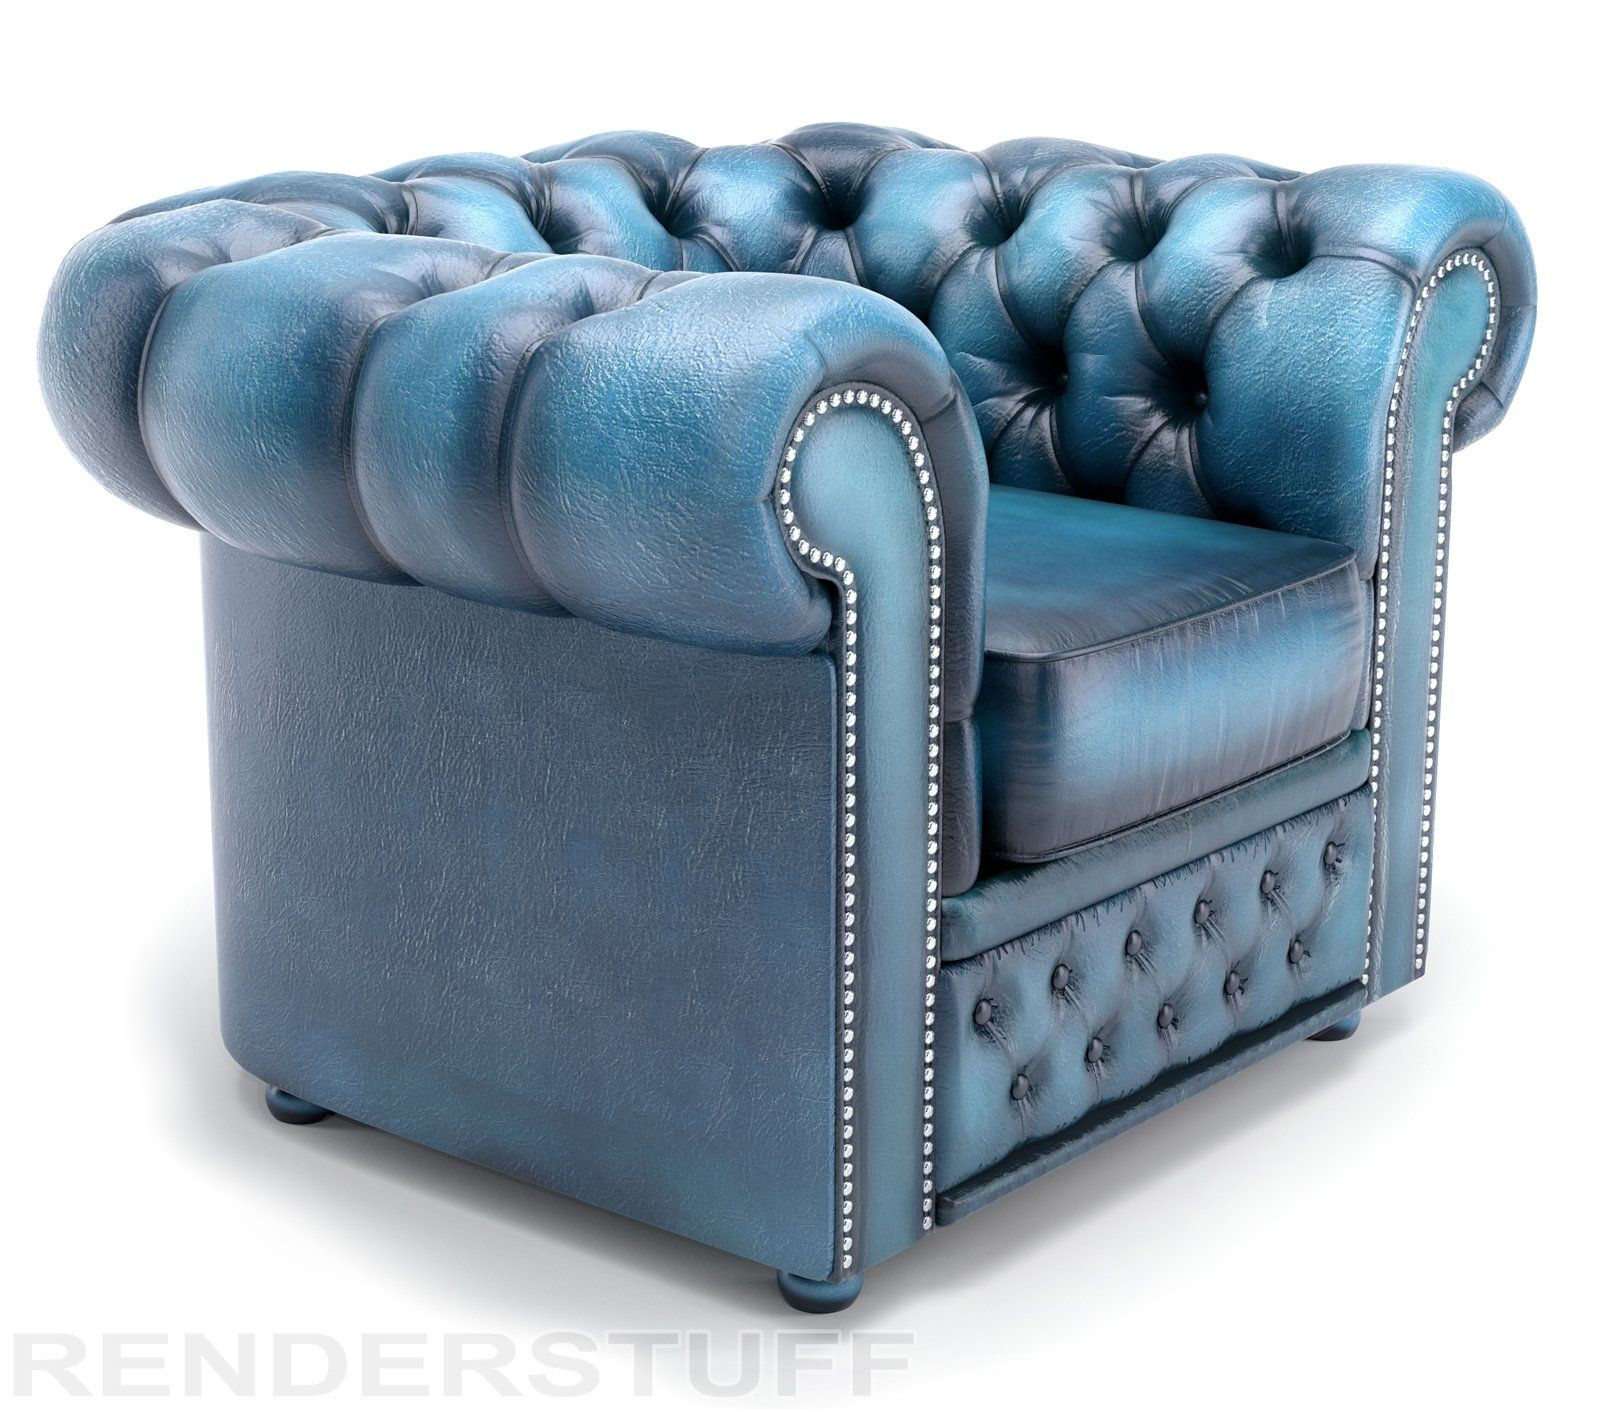 Blue Chesterfield Leather Sofa Best Blue Leather Couch